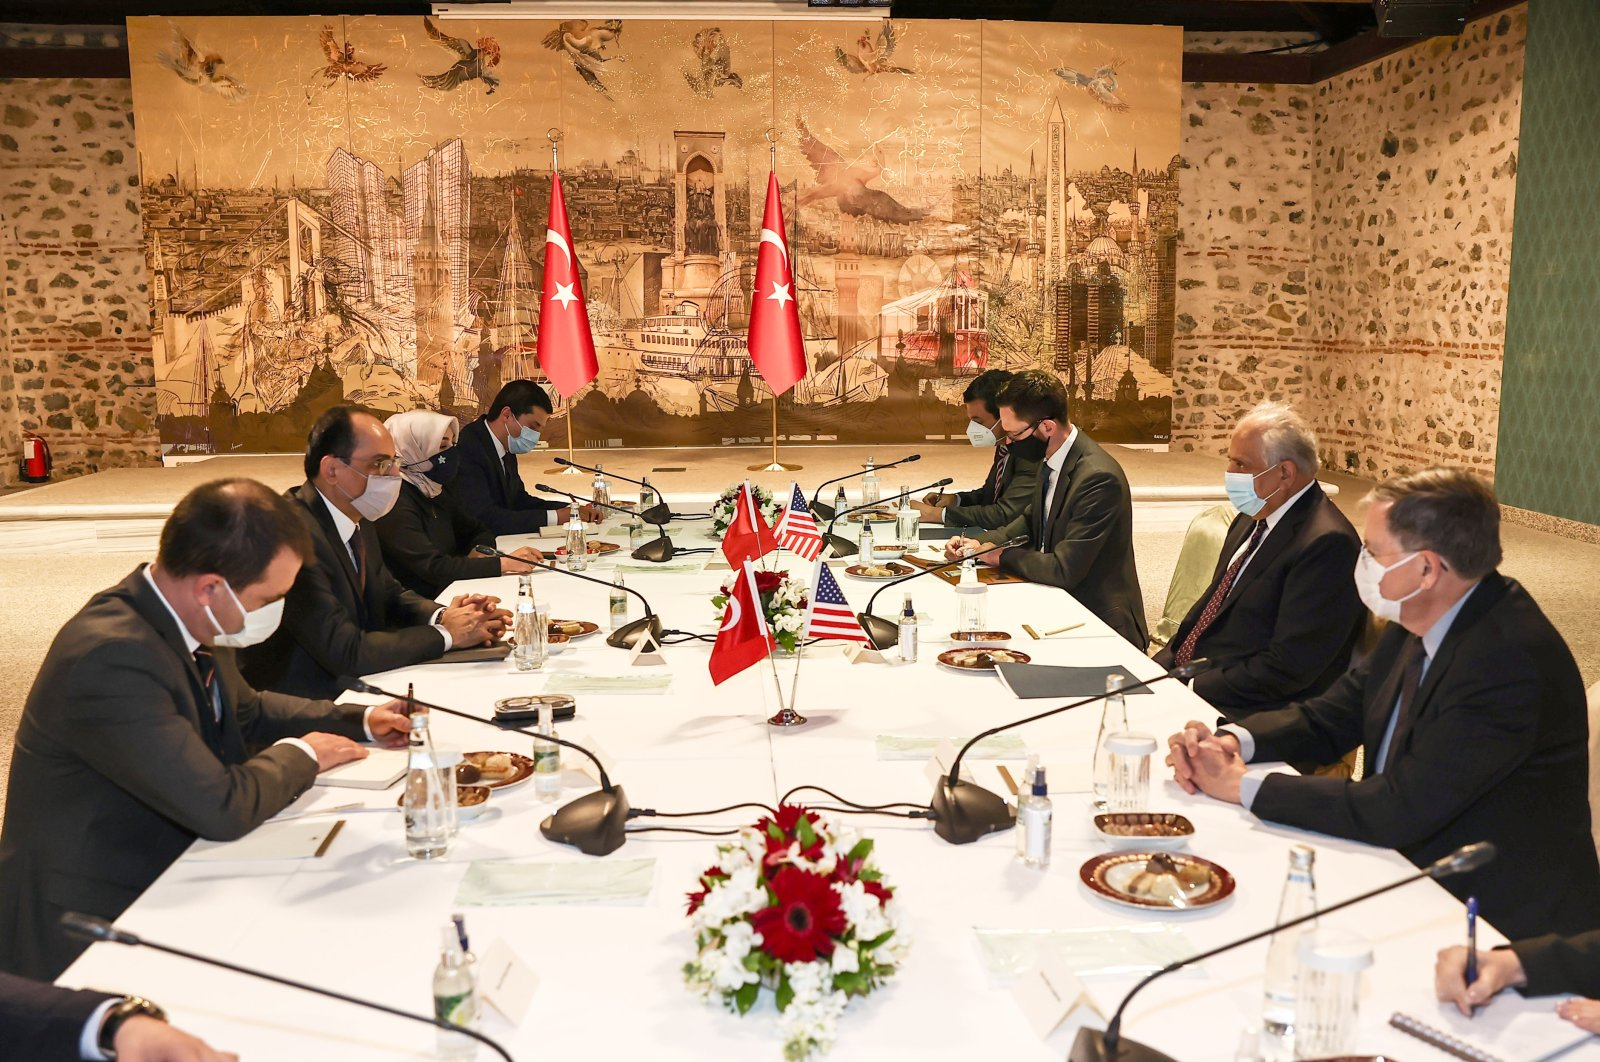 Turkey's Presidential Spokesperson Ibrahim Kalın (2nd L) and U.S. Special Representative for Afghanistan Zalmay Khalilzad (2nd R) sit at a table with their accompanying delegations in Istanbul, Turkey, March 27, 2021. (DHA Photo)